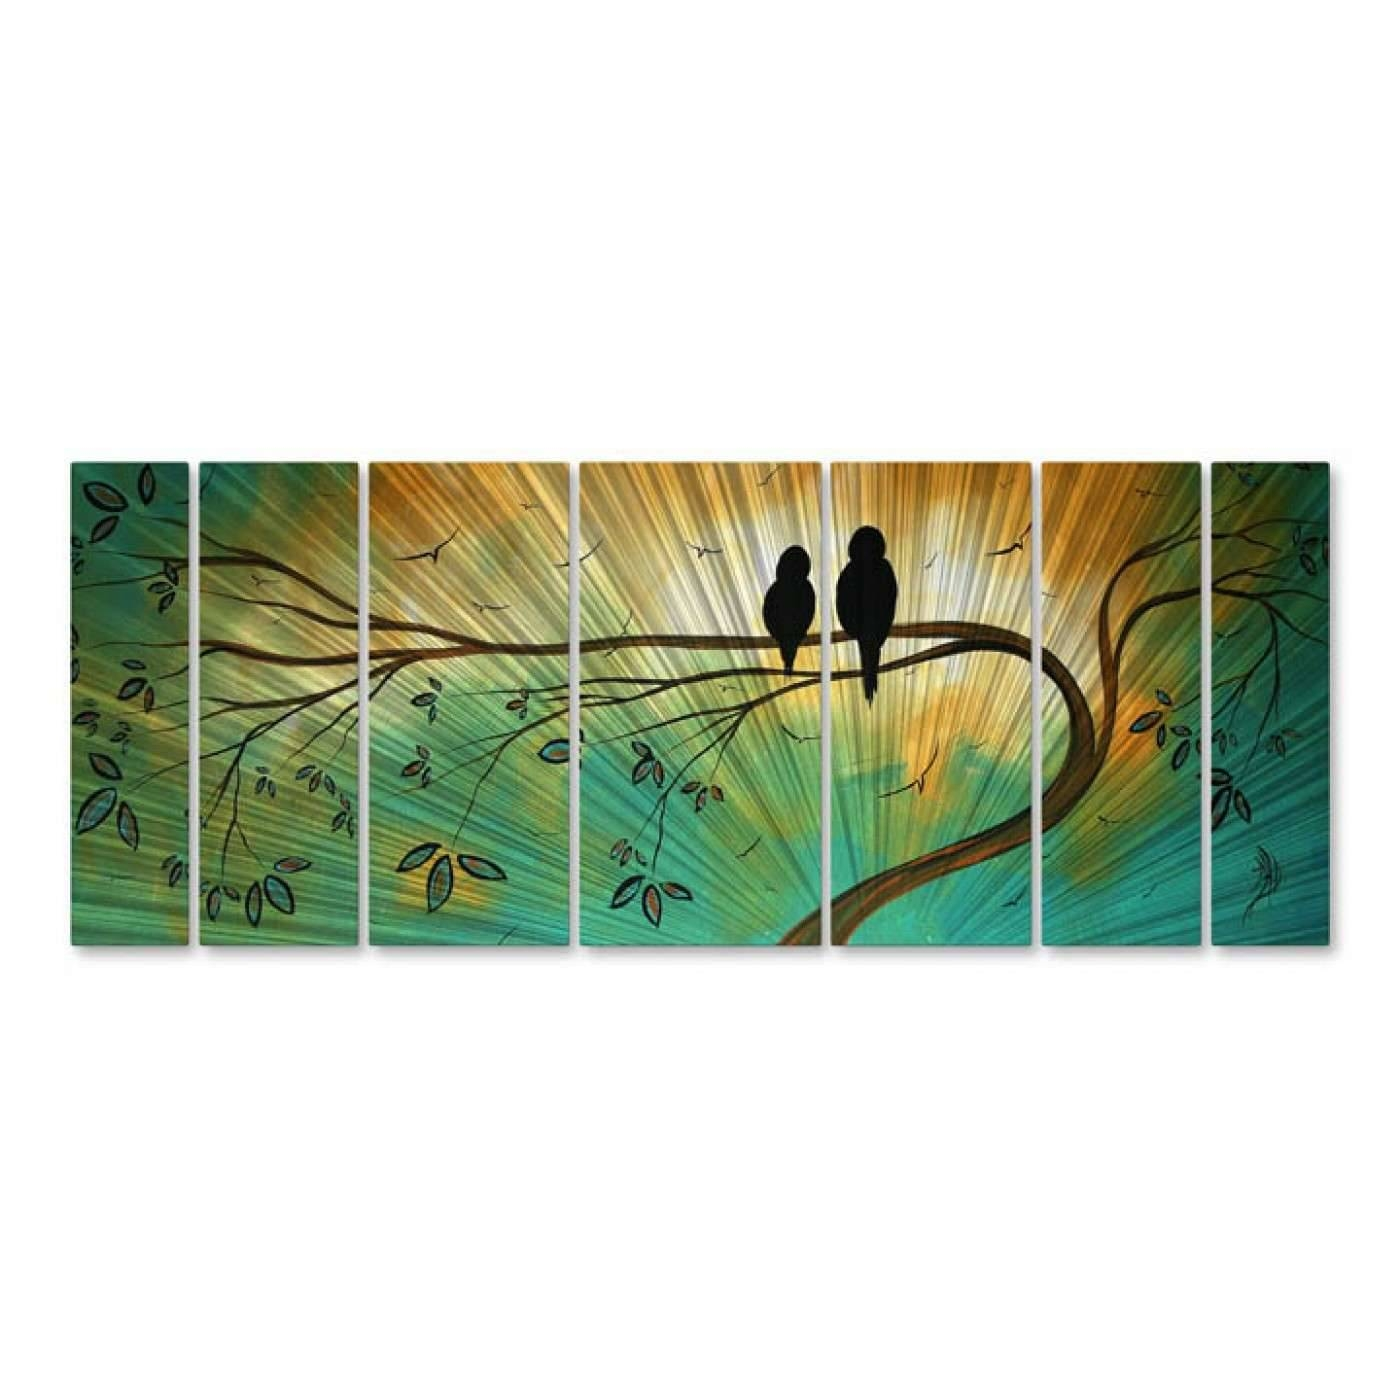 All My Walls Mad00120 Decor | Goedeker's With Current Megan Duncanson Metal Wall Art (View 21 of 25)